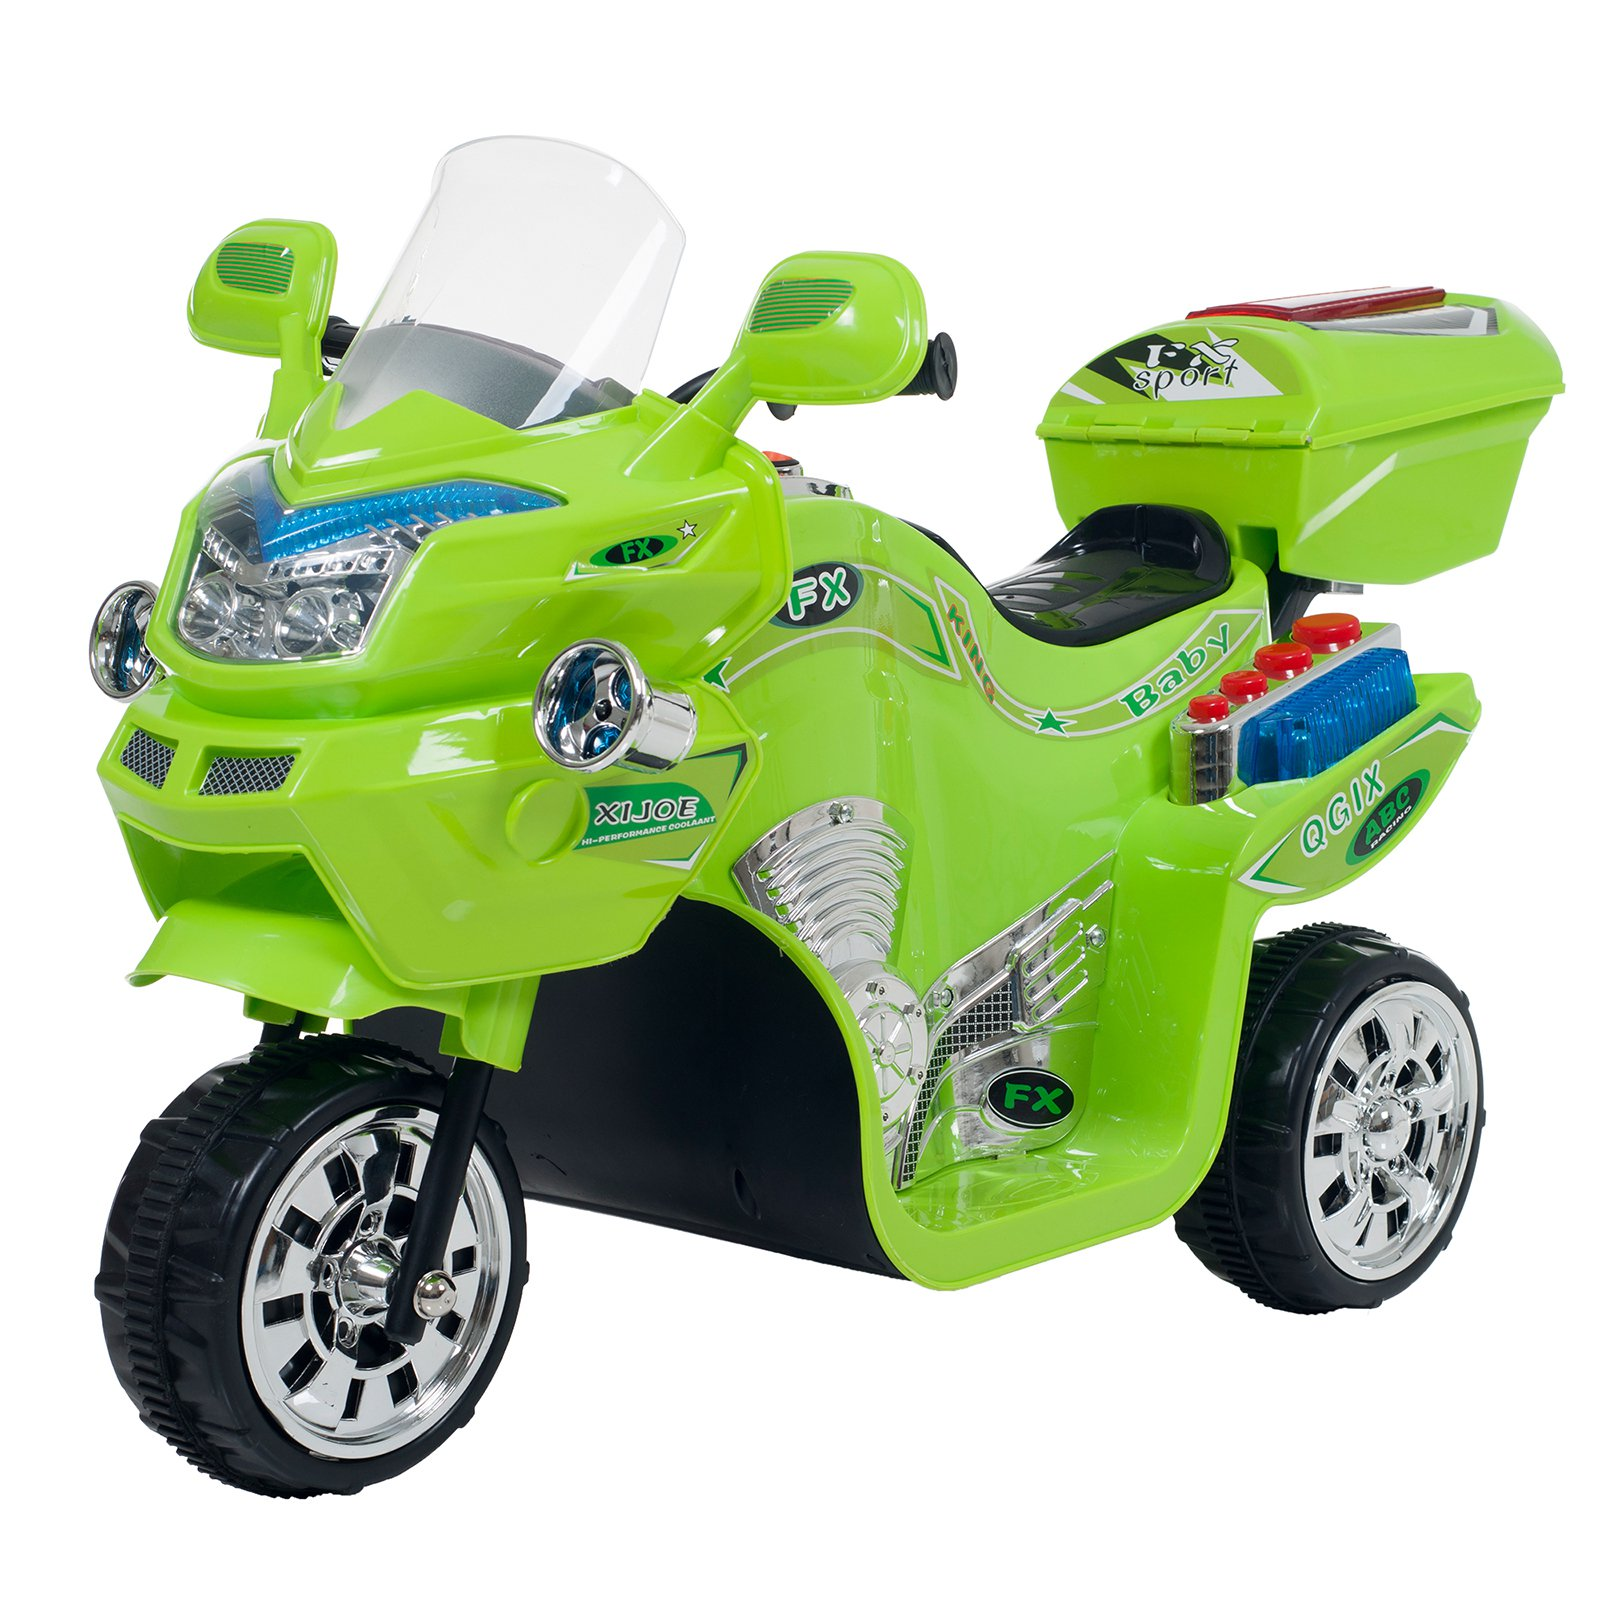 Recaro Lil' Rider 3 Wheel Battery Powered Motorcycle 80-109 Color: Green